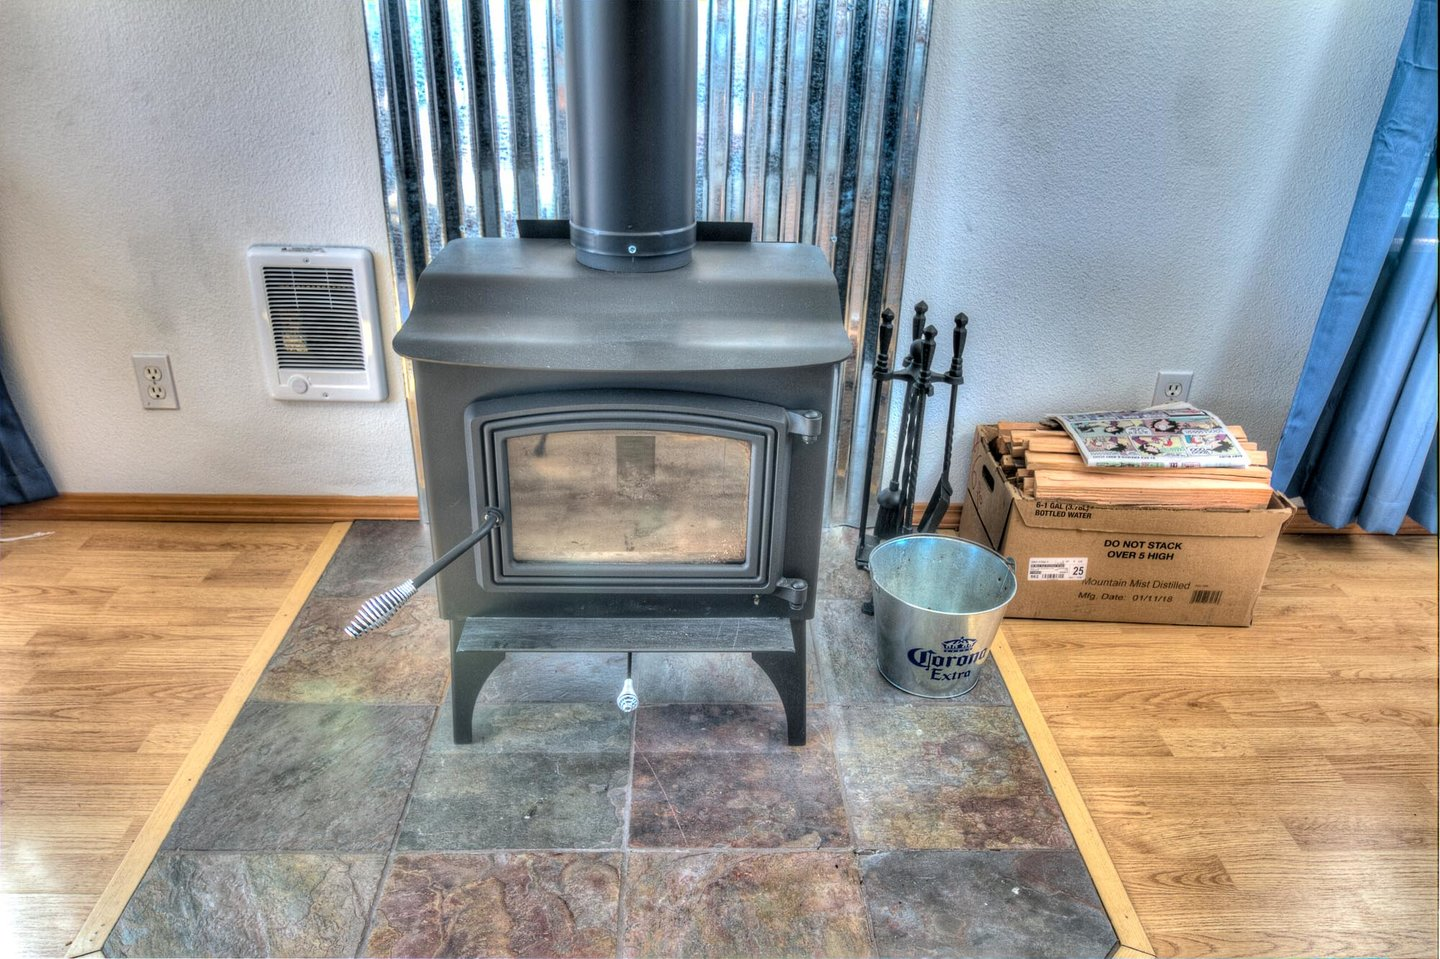 Enjoy the woodburning stove on cool evenings.